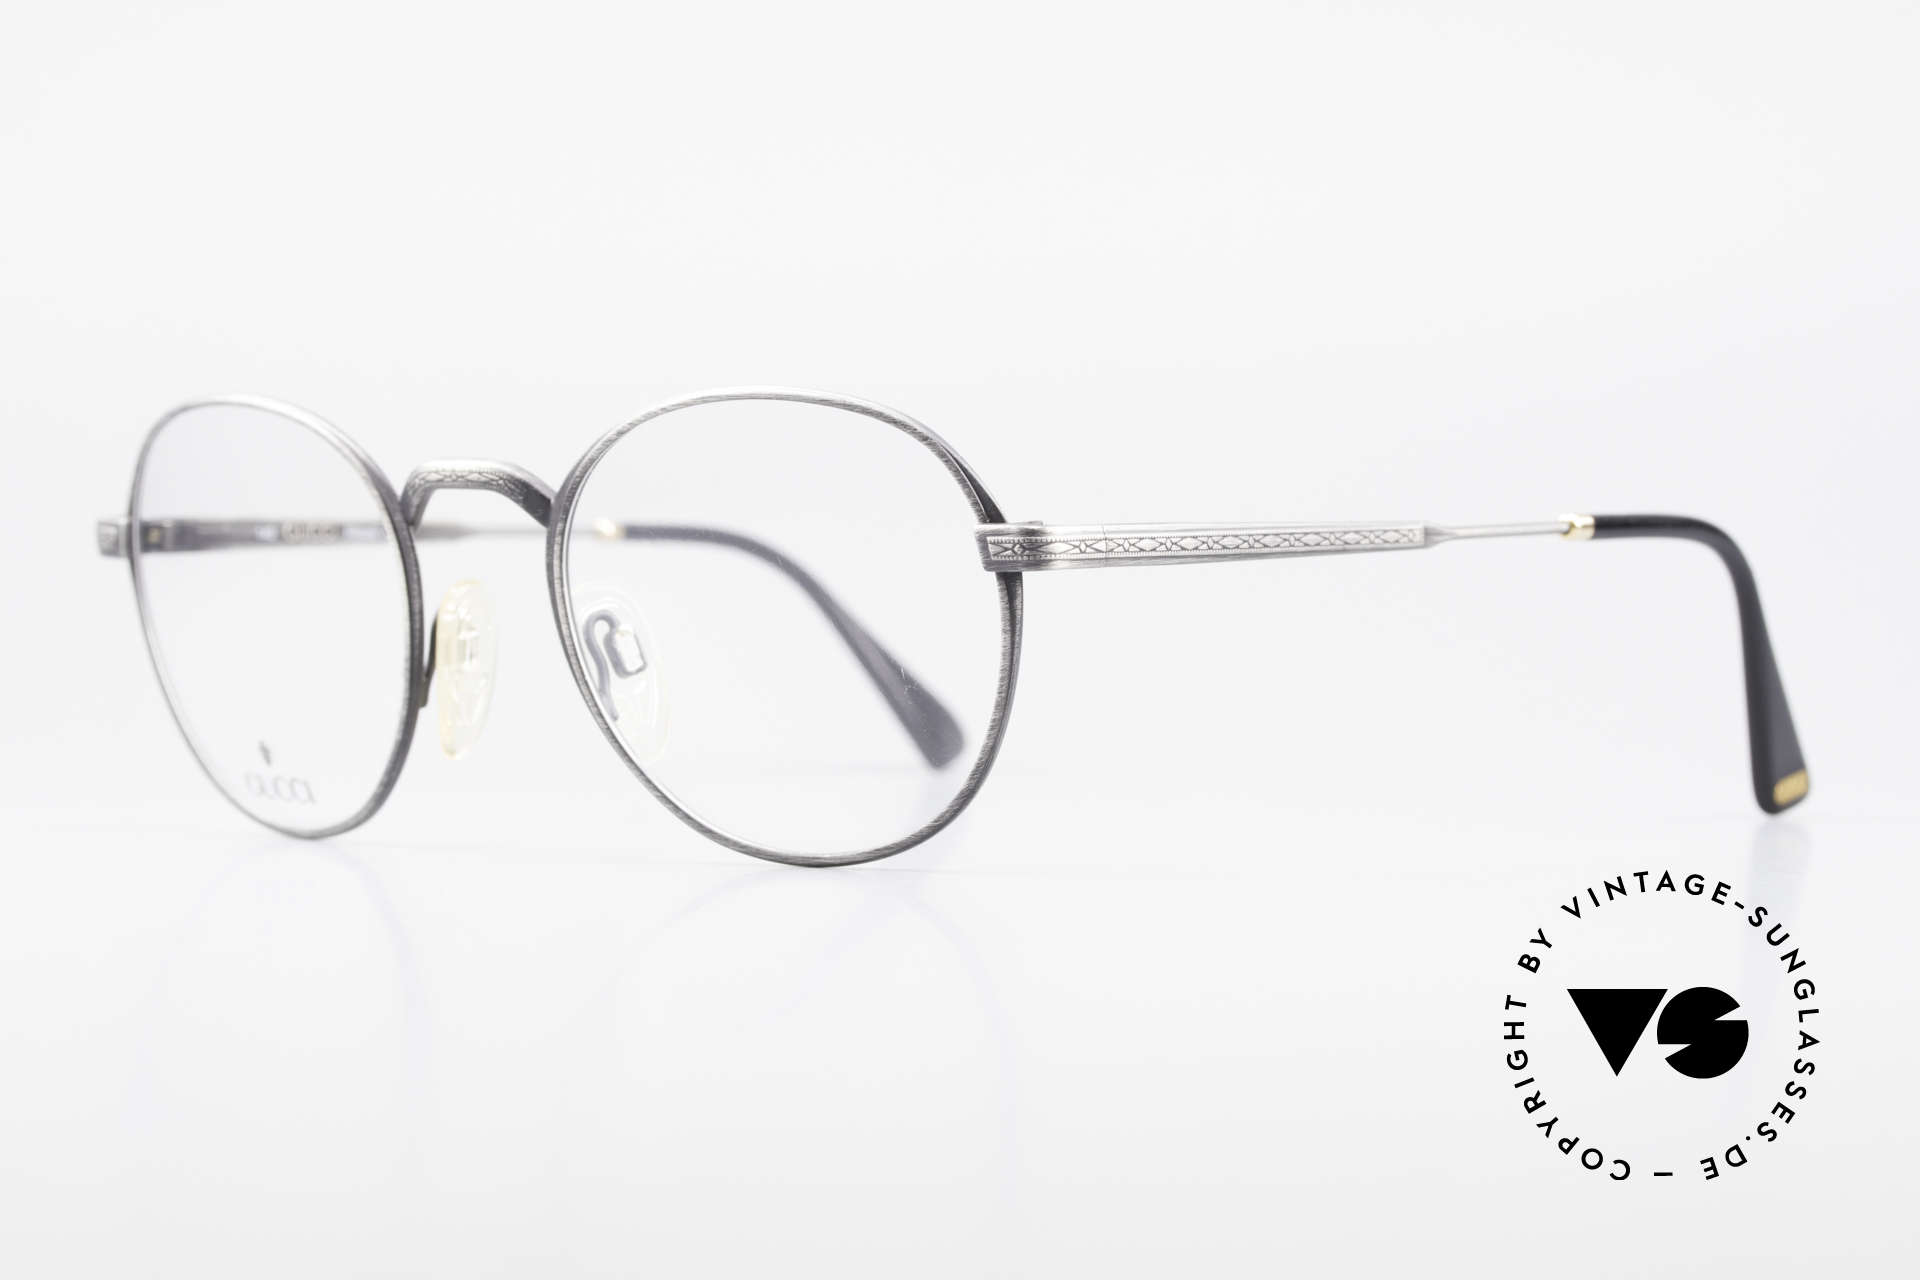 "Gucci 1226 Classic 80's Panto Eyeglasses, ""antique metal"" frame finish with engravings, Made for Men and Women"